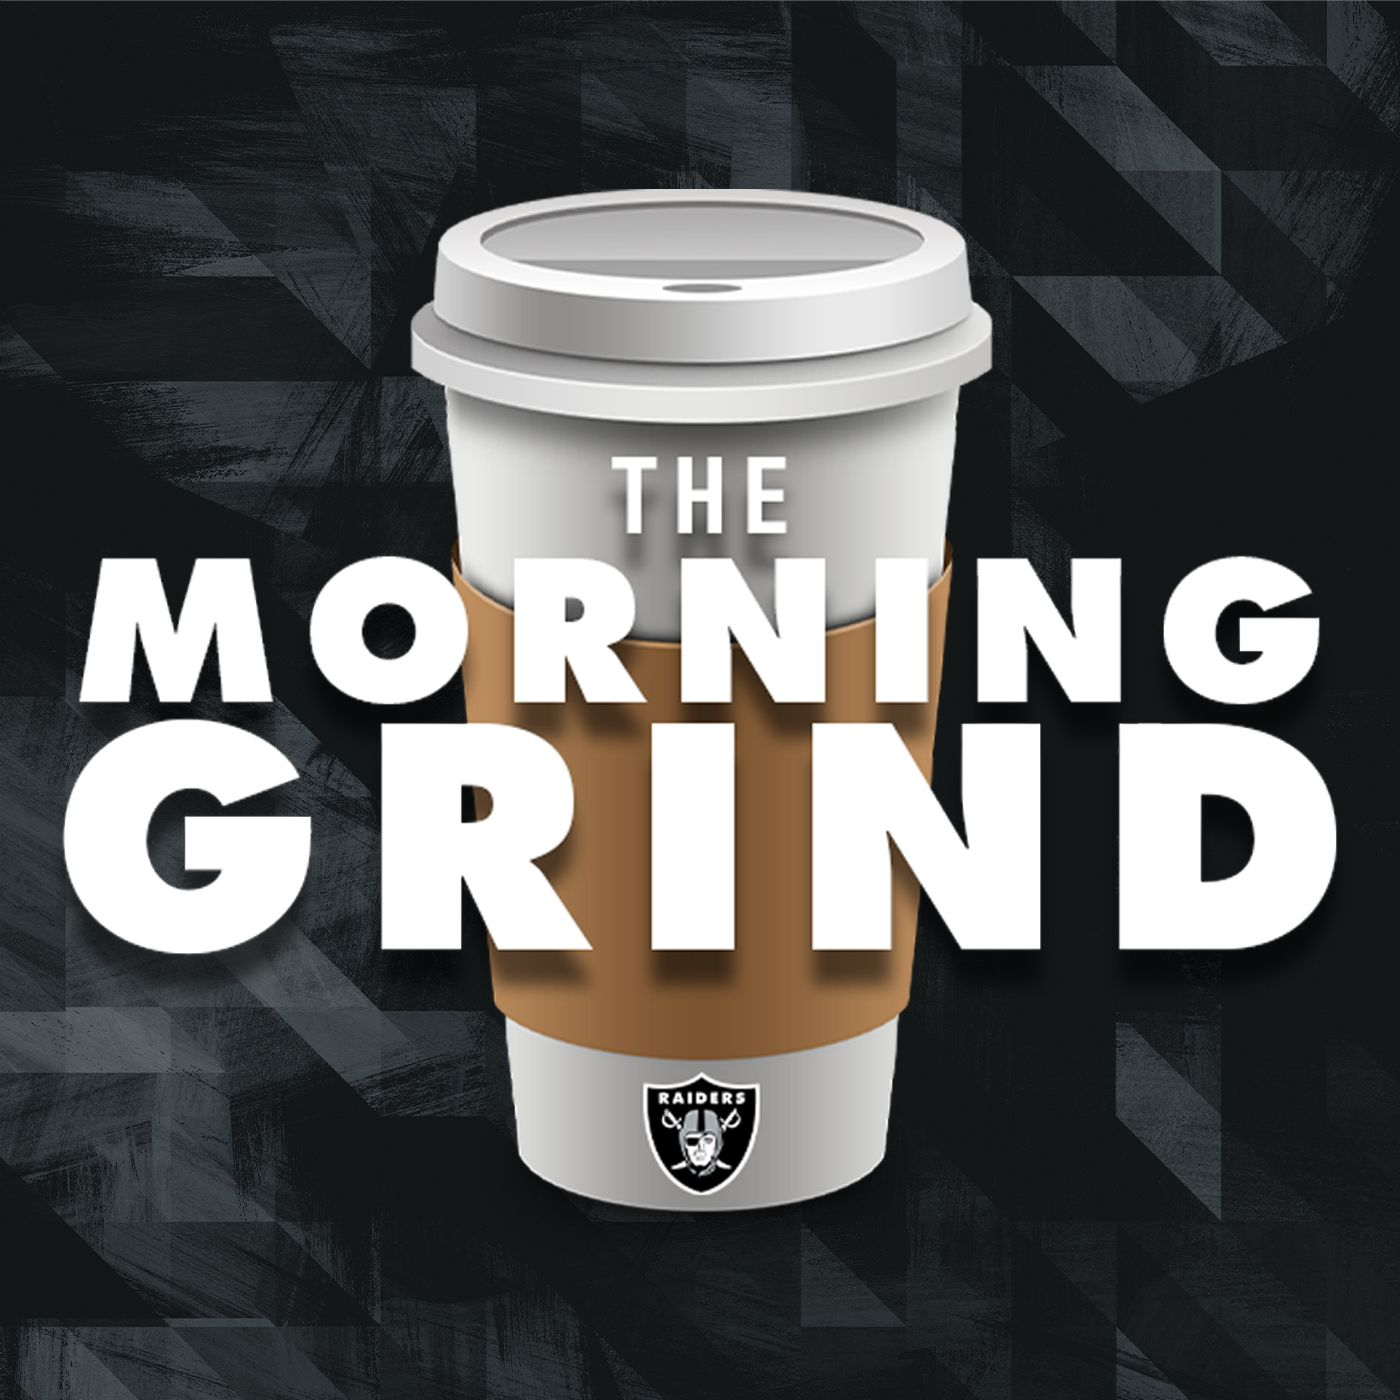 The Morning Grind Podcast - Listen Now